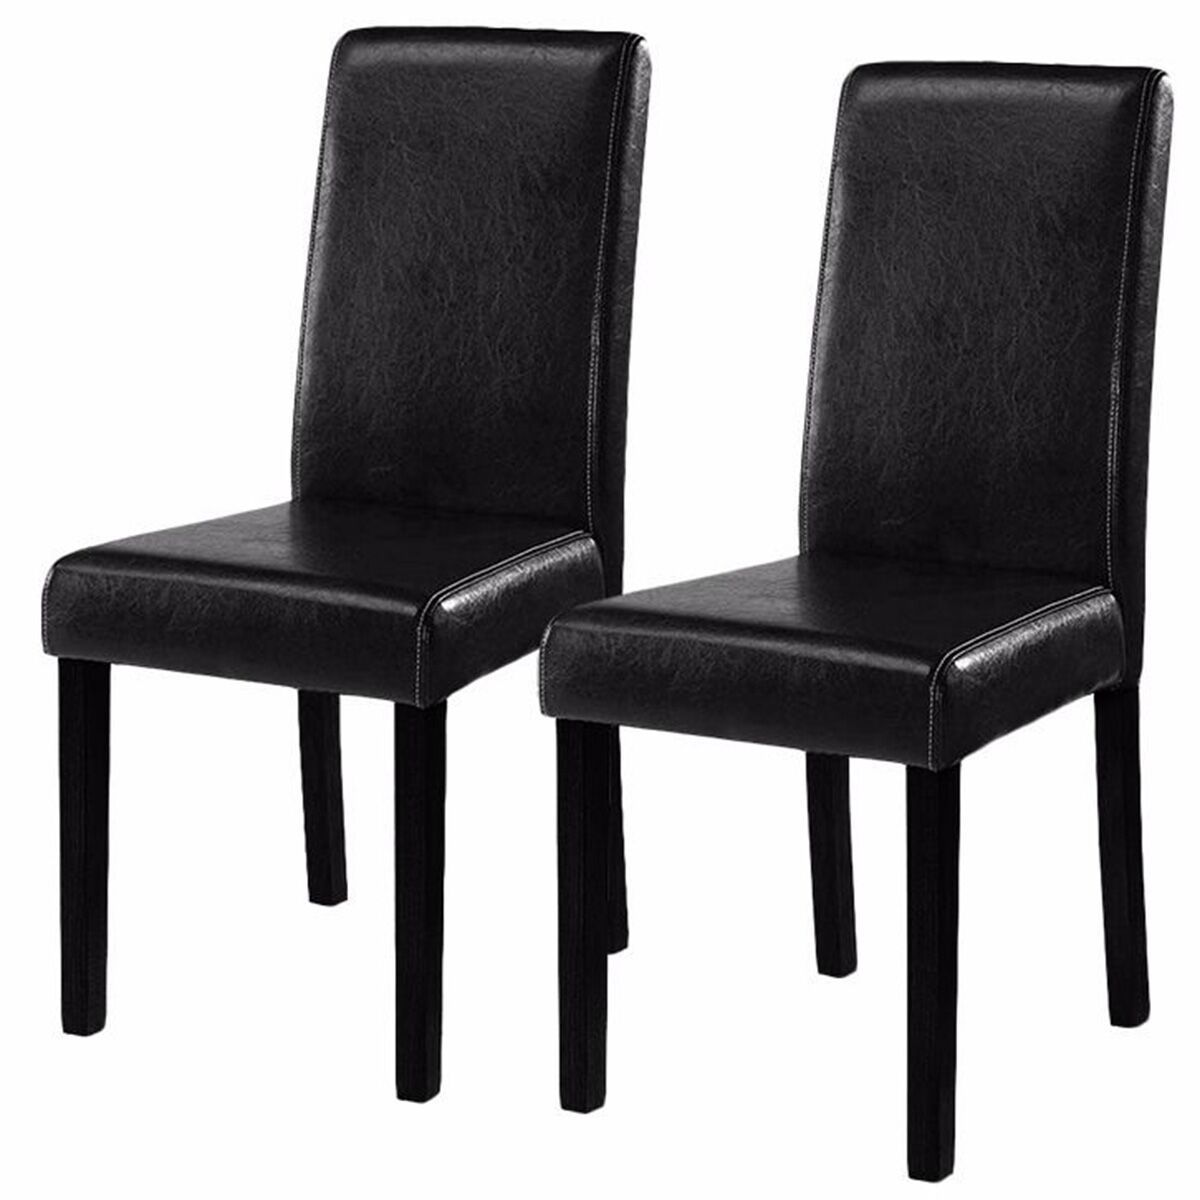 Black Leather Dining Chairs Costway Set Of 2 Black Elegant Design Leather Contemporary Dining Chairs Home Room